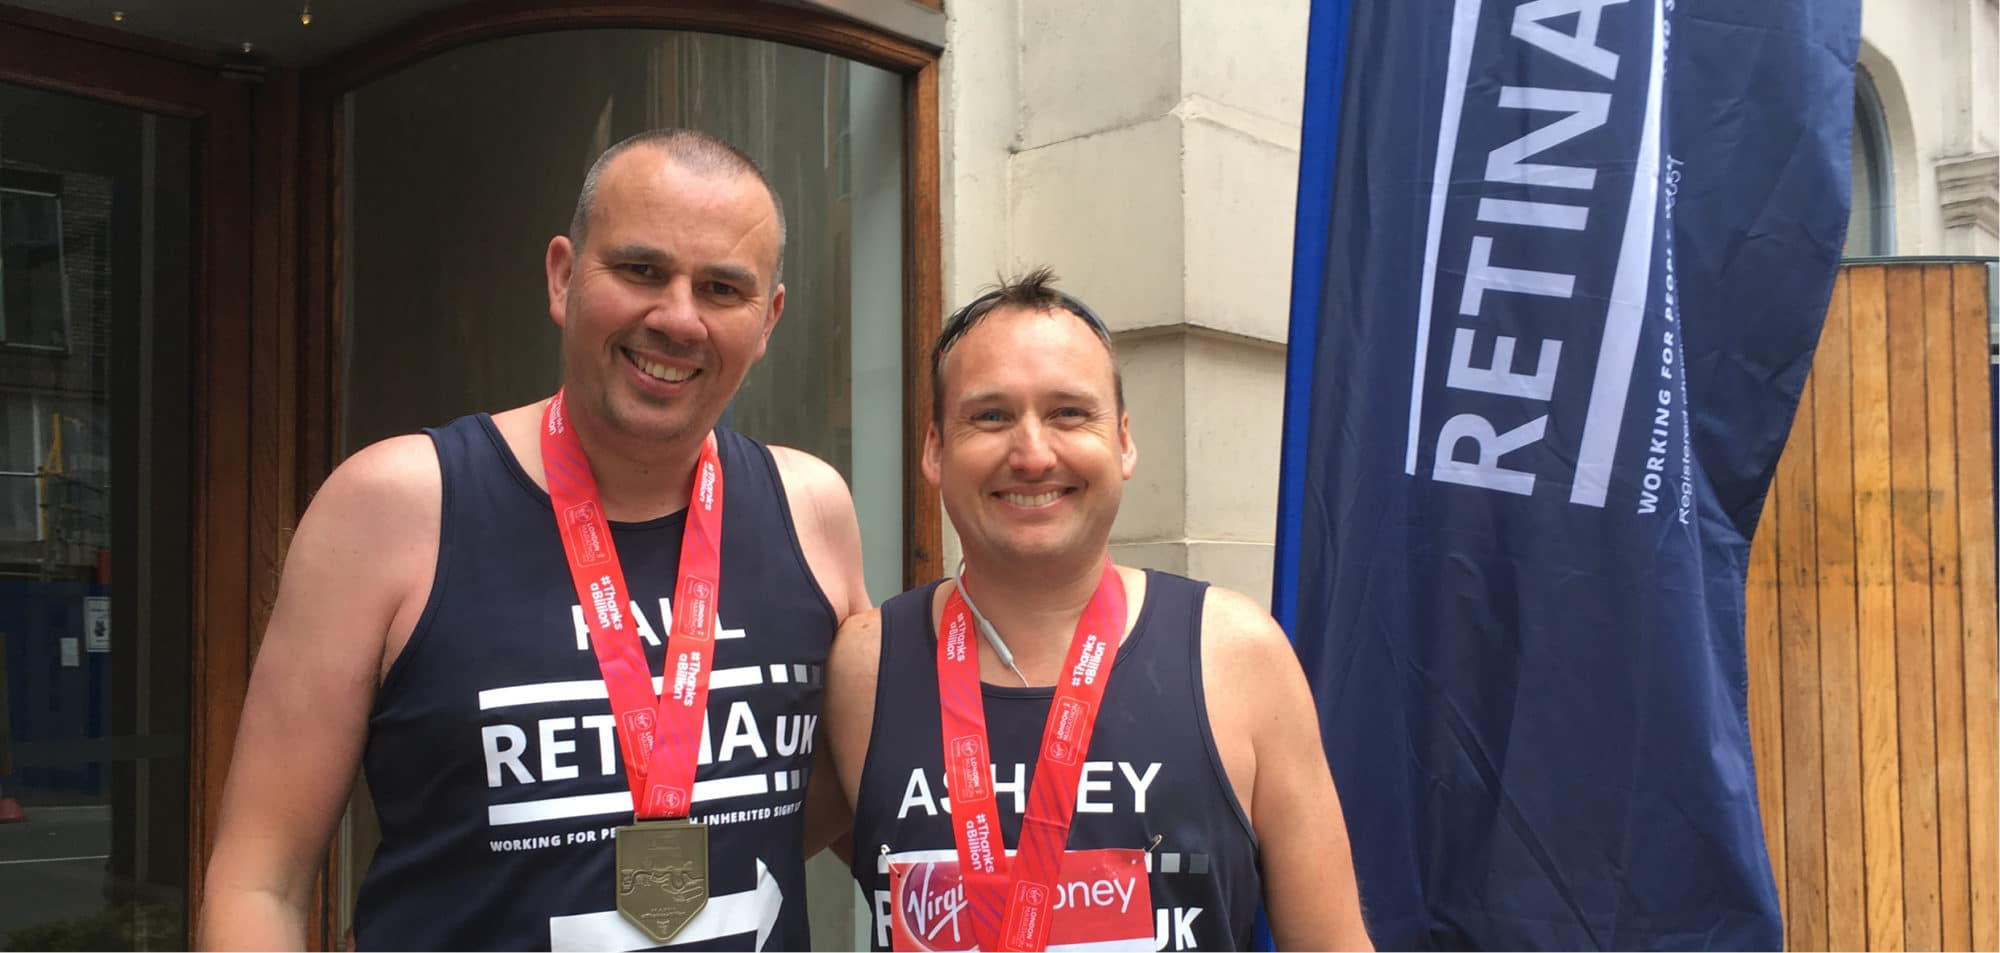 Image shows two Retina UK London Marathon runners - they are standing side by side smiling and wearing their race medals. A blue Retina UK flag is visible behind.